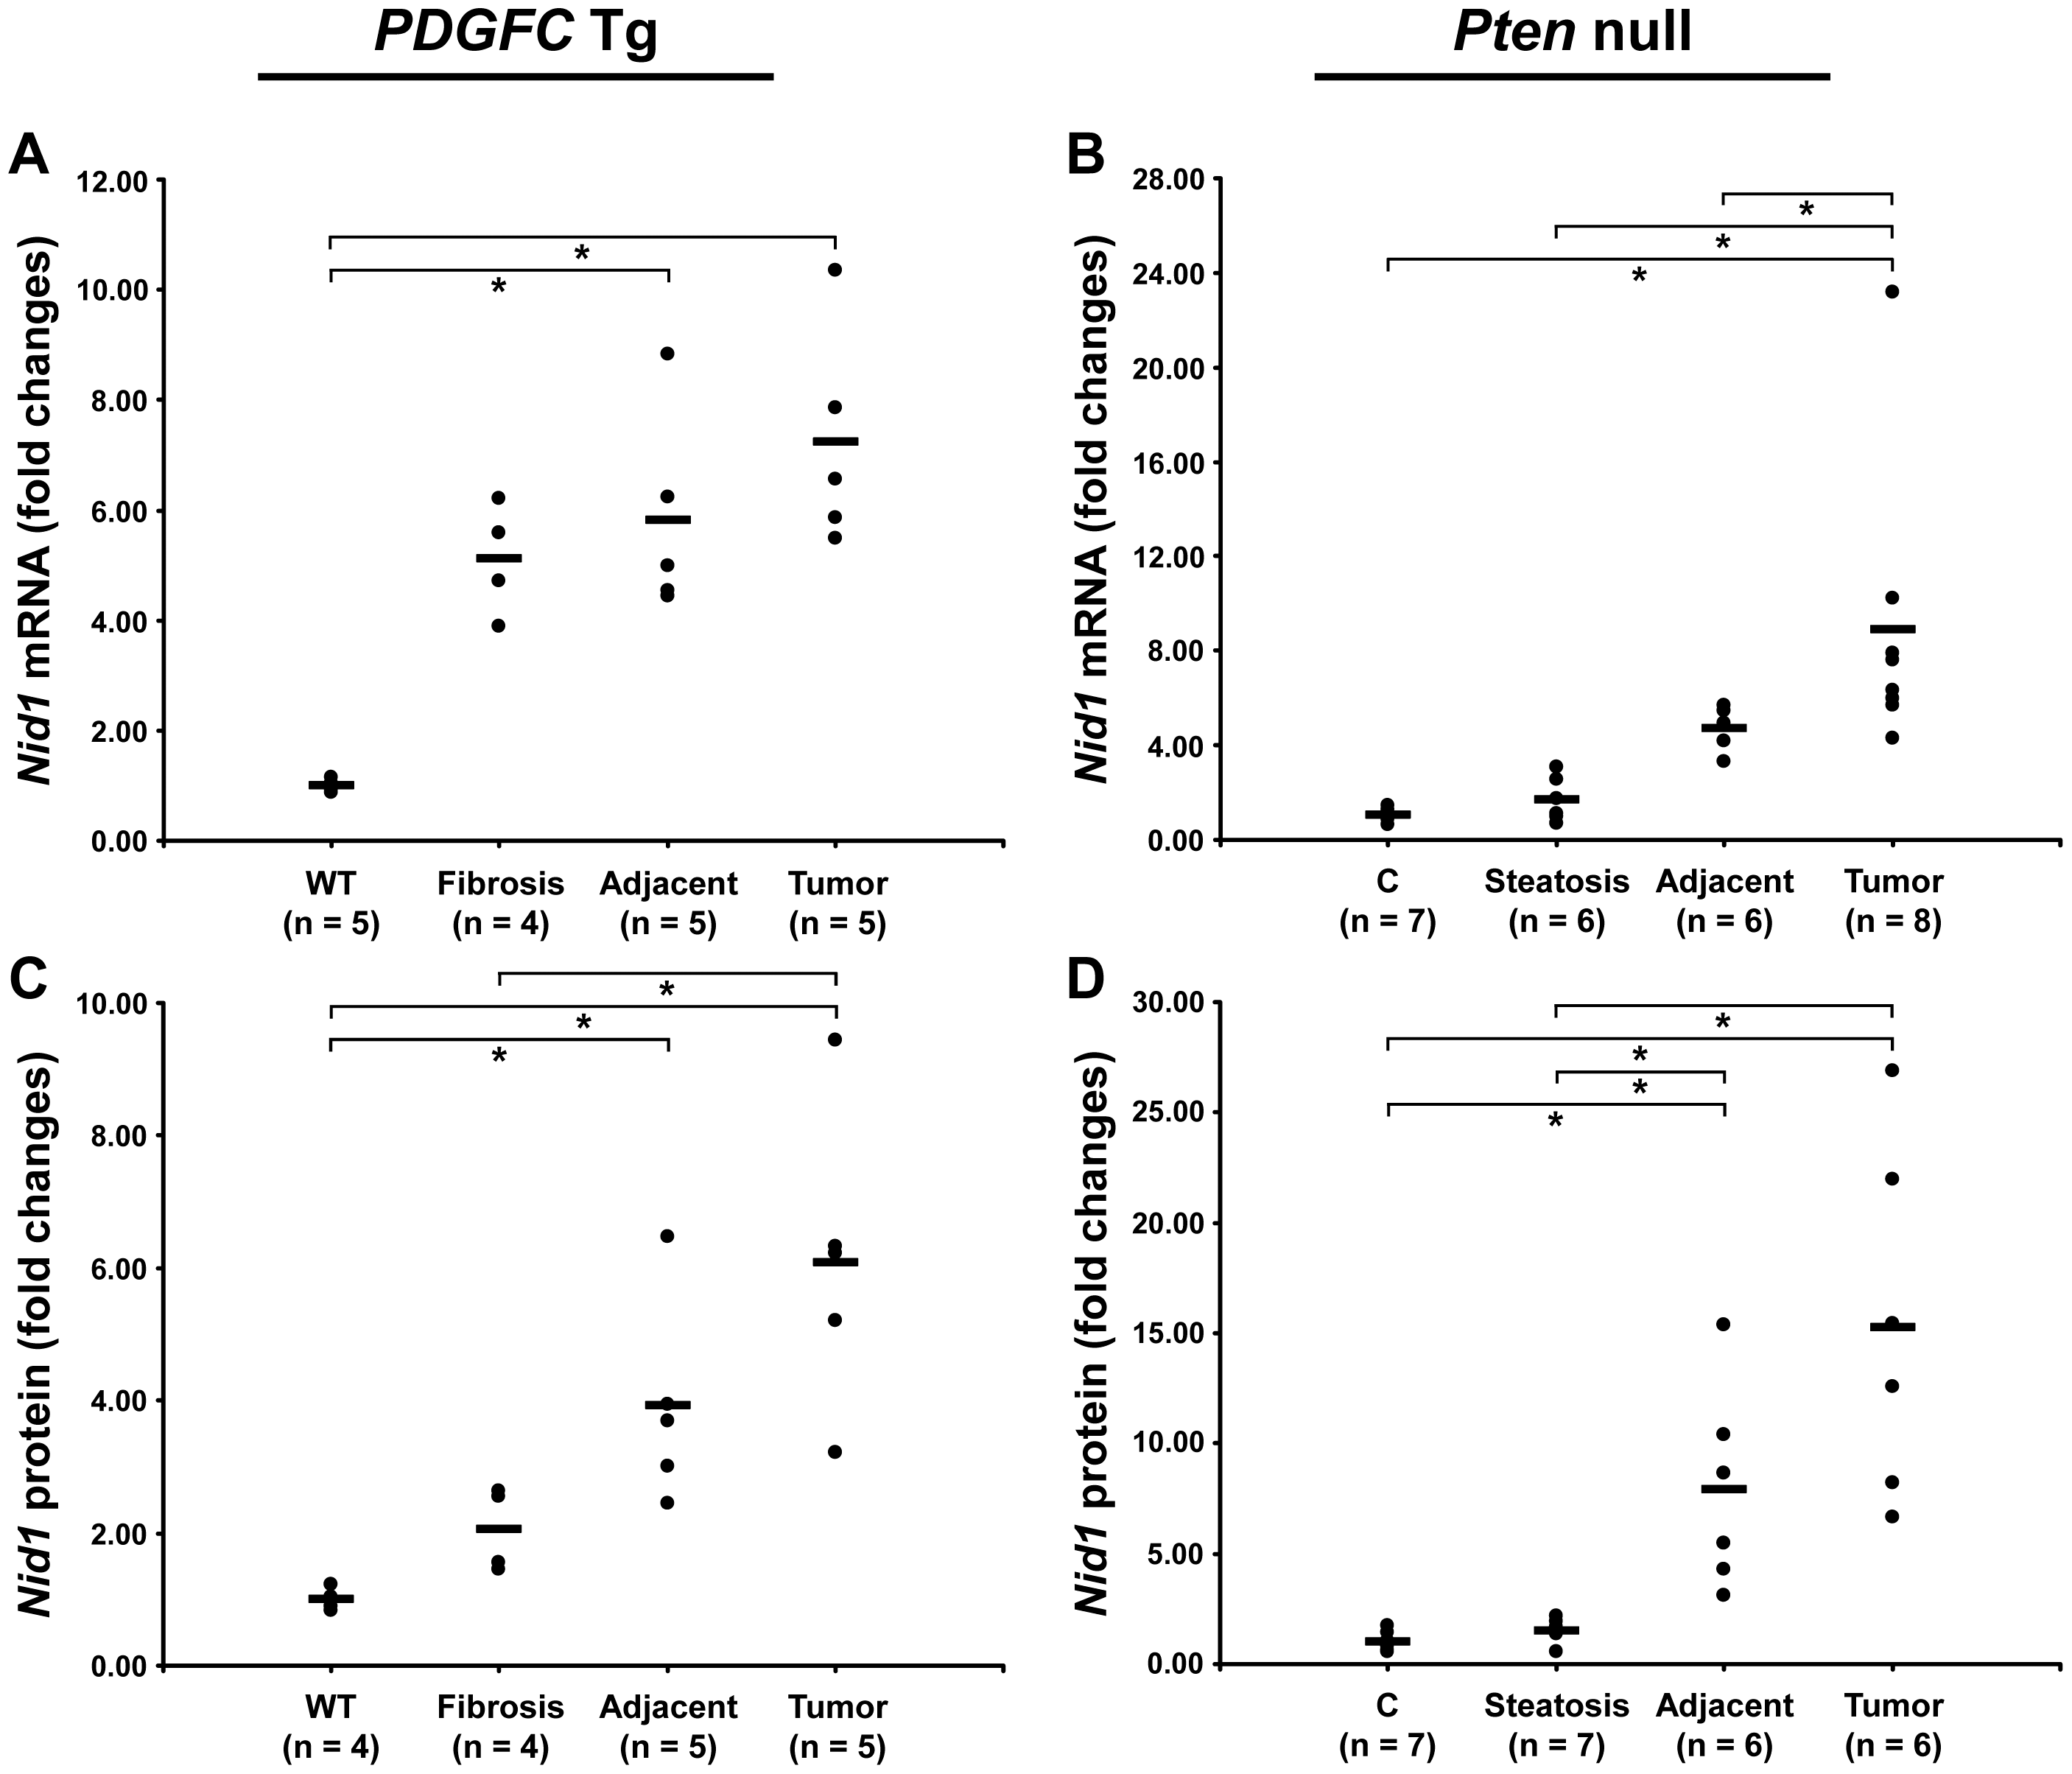 Up-regulation of nidogen 1 mRNA and protein in <i>PDGFC</i> Tg and <i>Pten</i> null tumors.